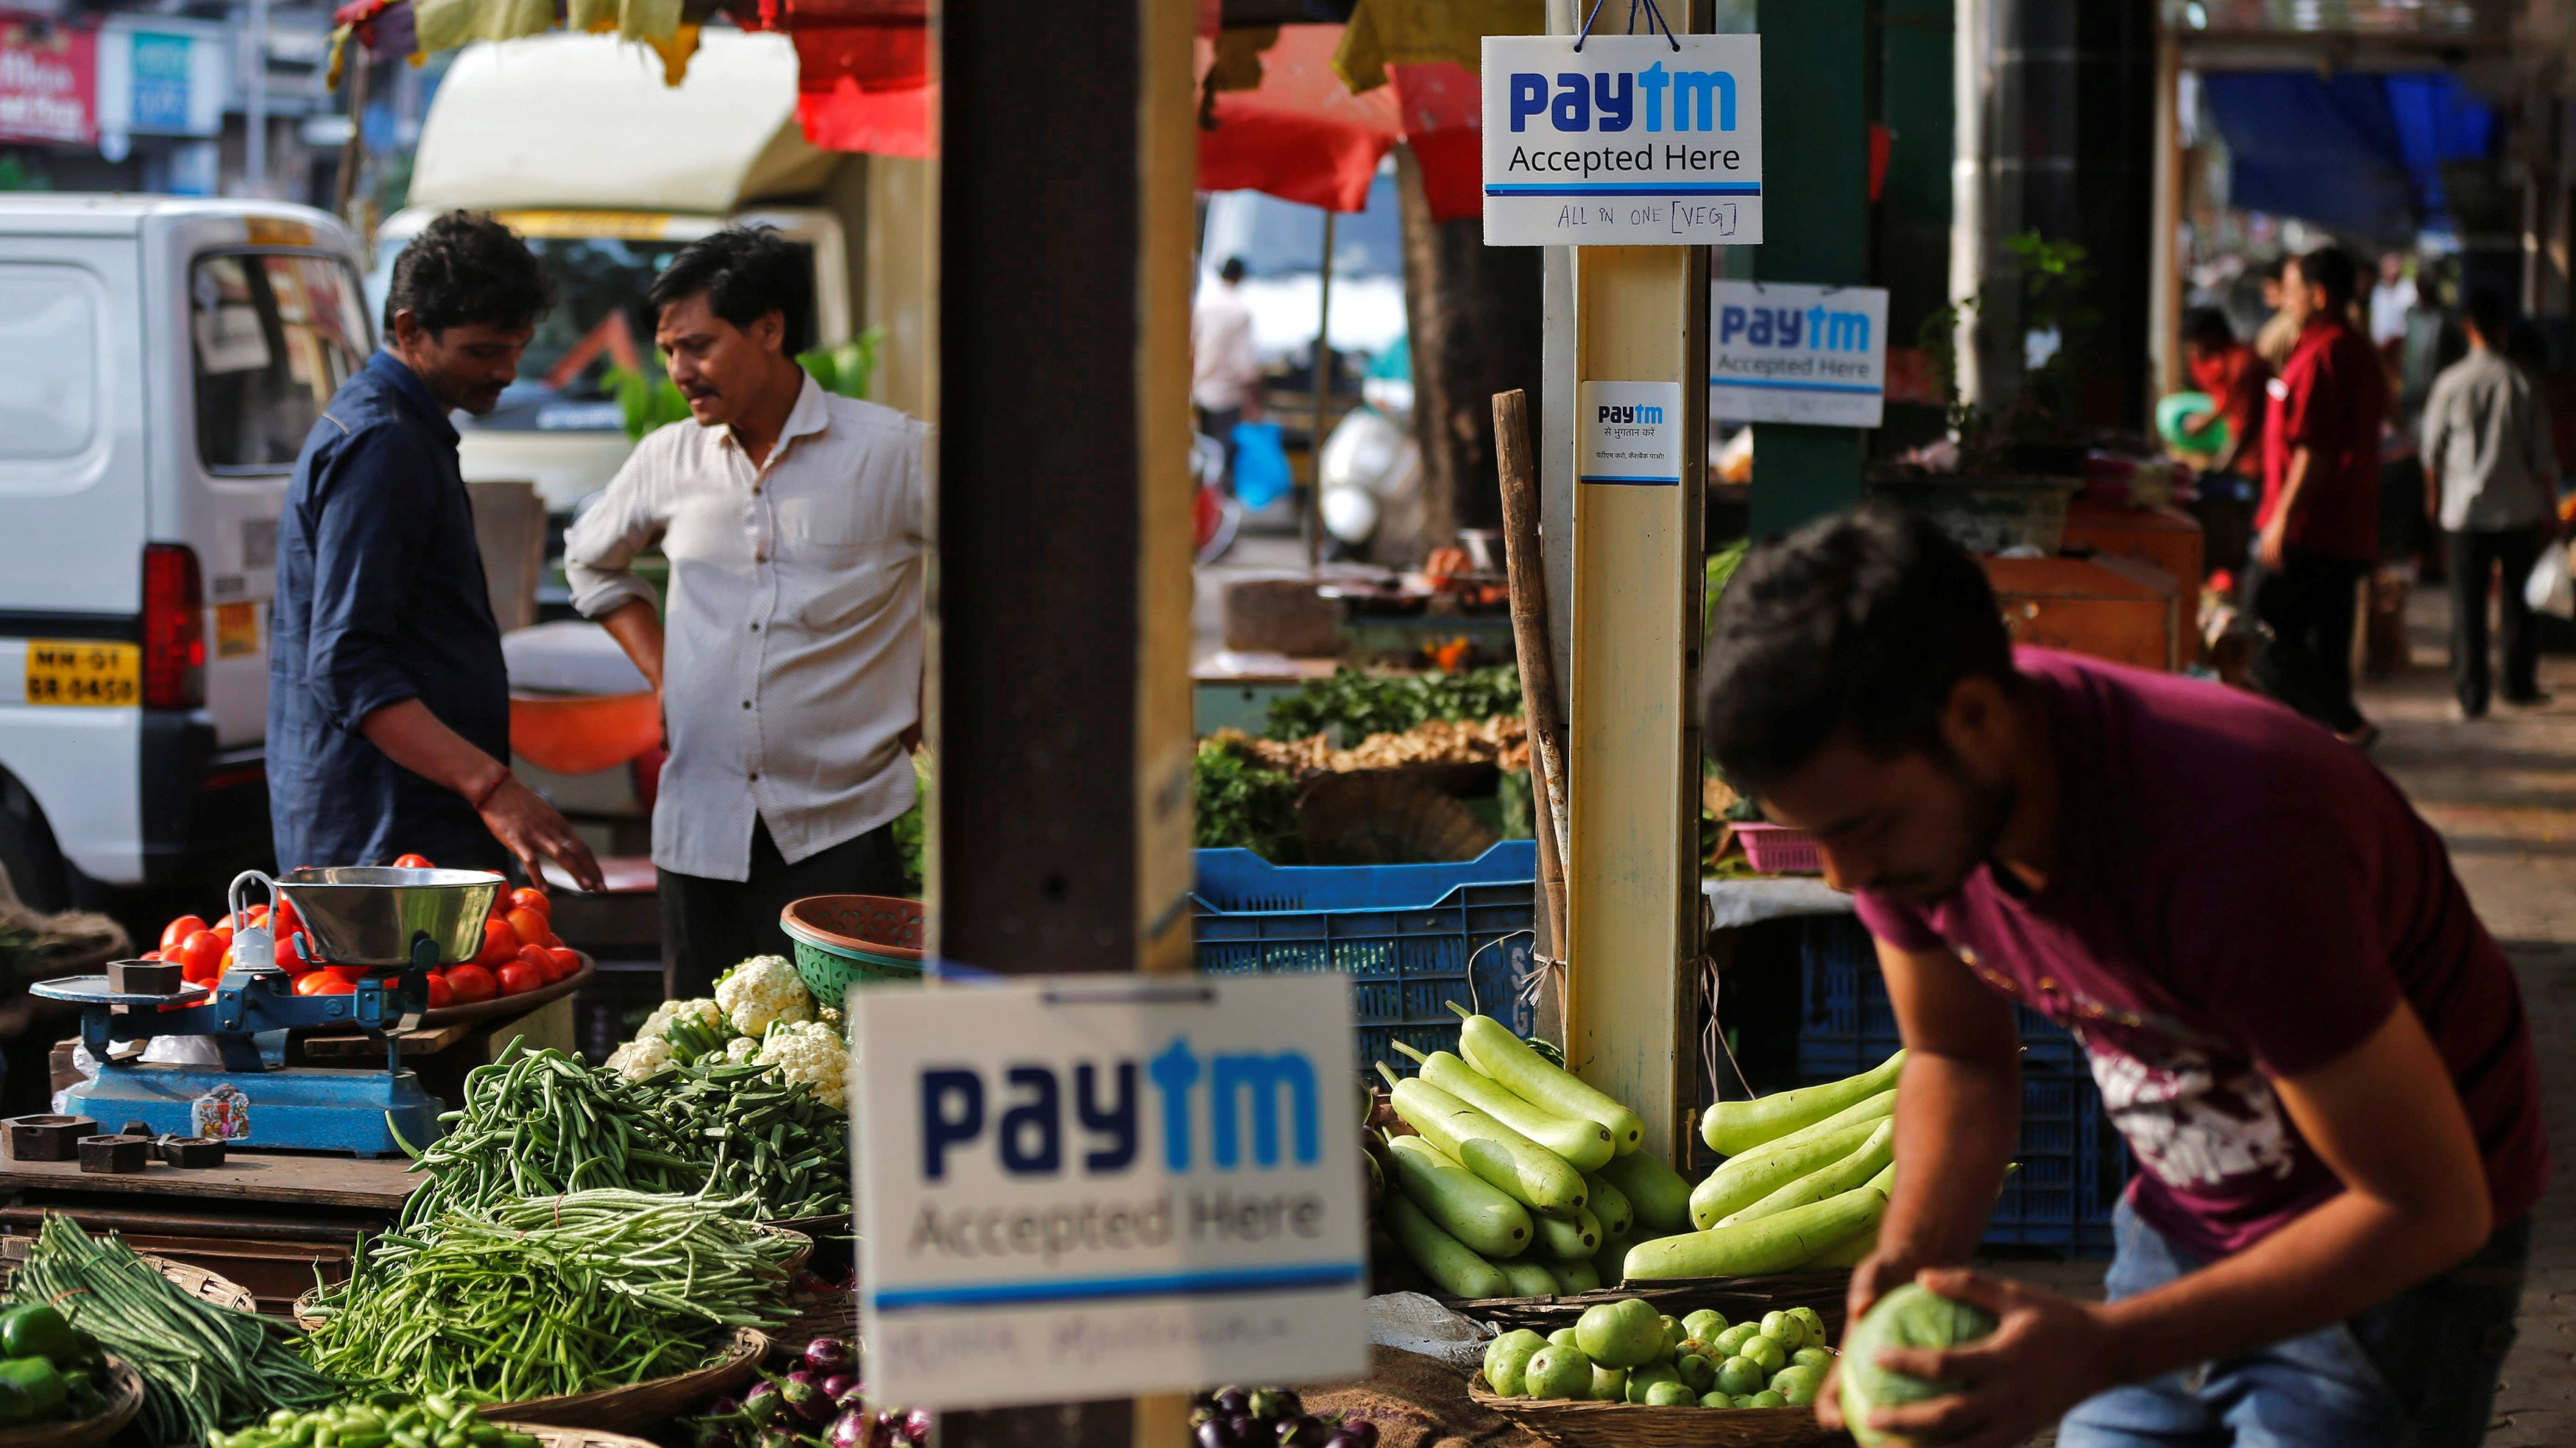 Advertisement boards of Paytm, a digital wallet company, are seen placed at stalls of roadside vegetable vendors as they wait for customers in Mumbai